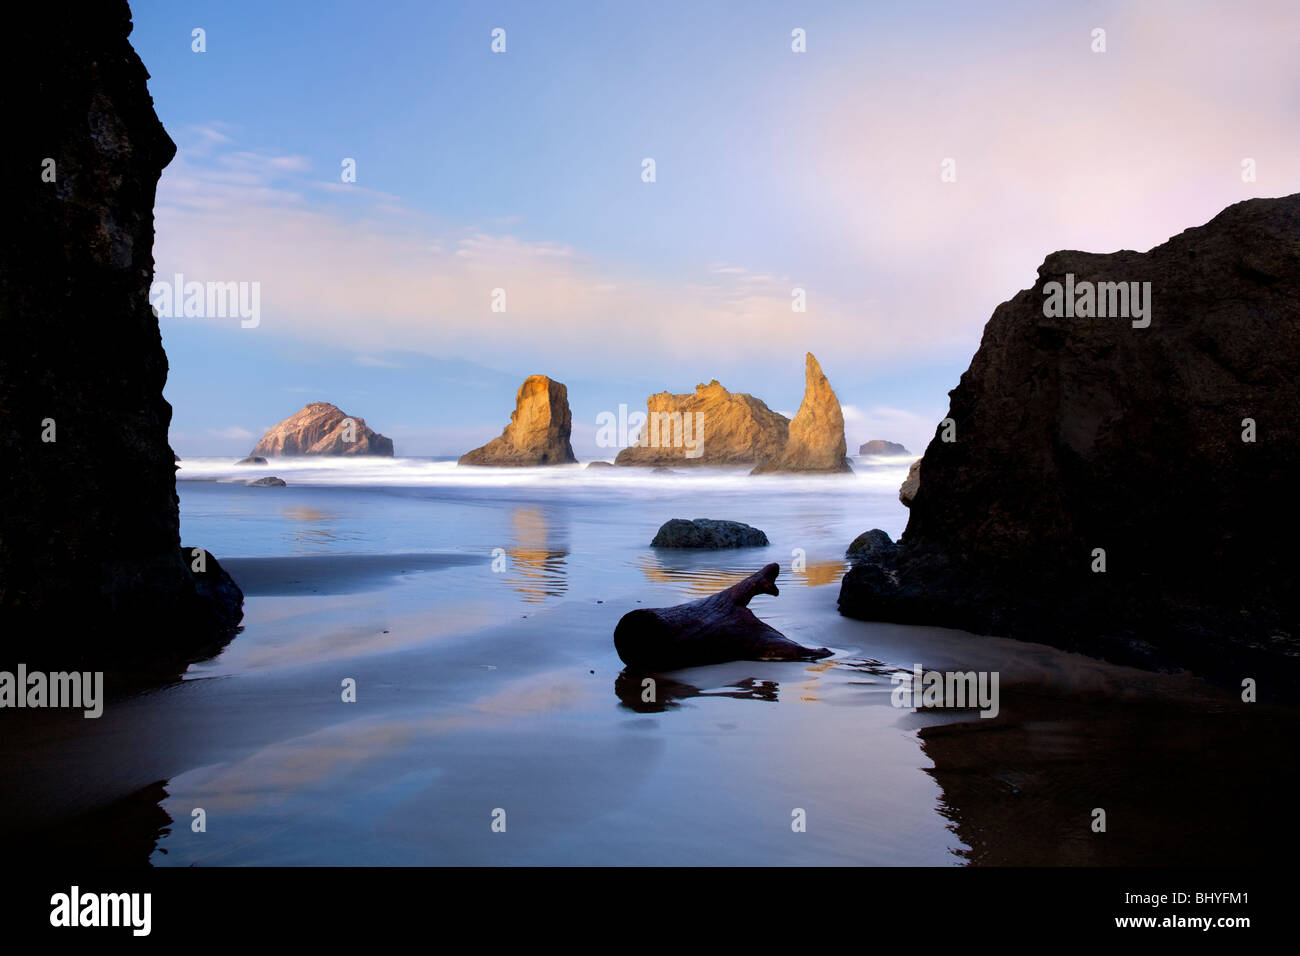 Low tide and sunrise at Bandon beach. Oregon - Stock Image